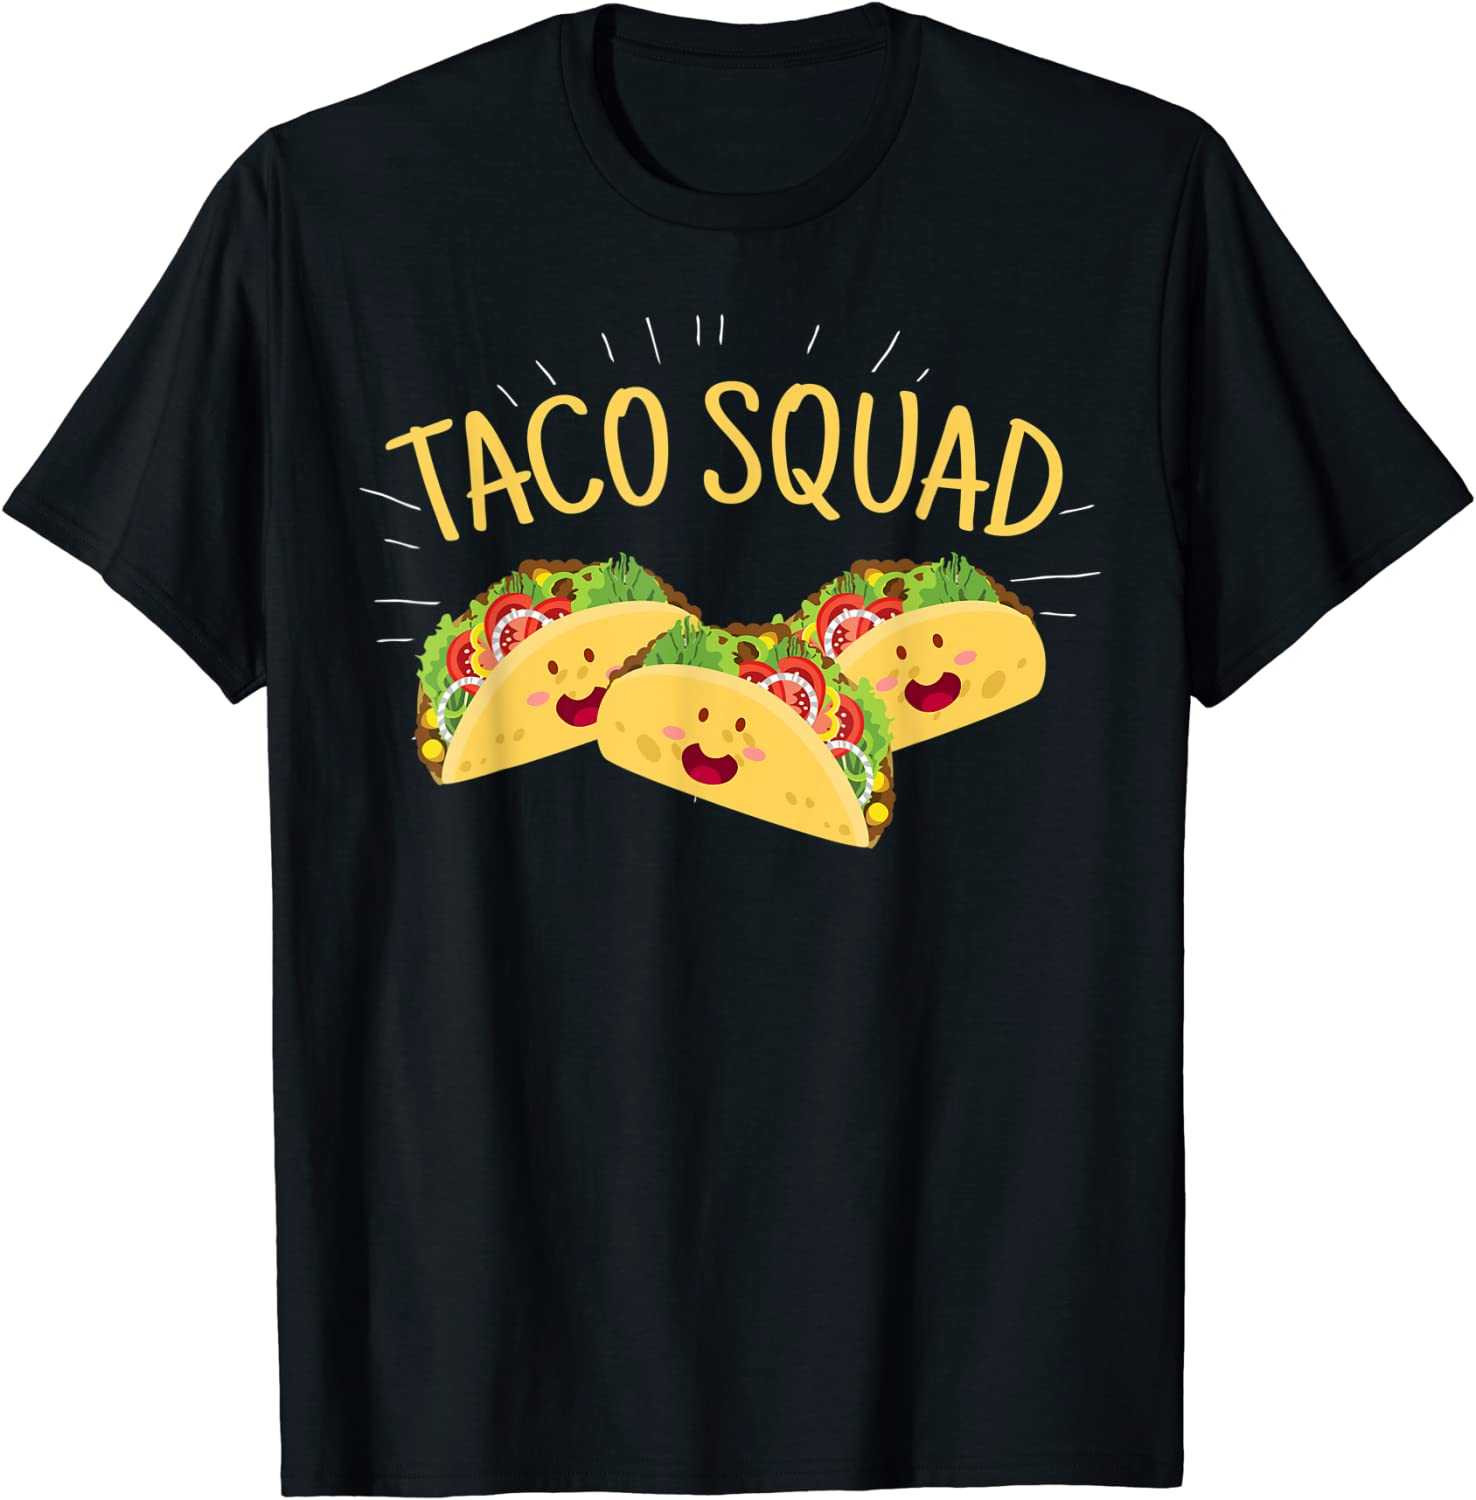 Funny Taco Squad T-Shirt Cute Mexican Food Lover Tee Gift